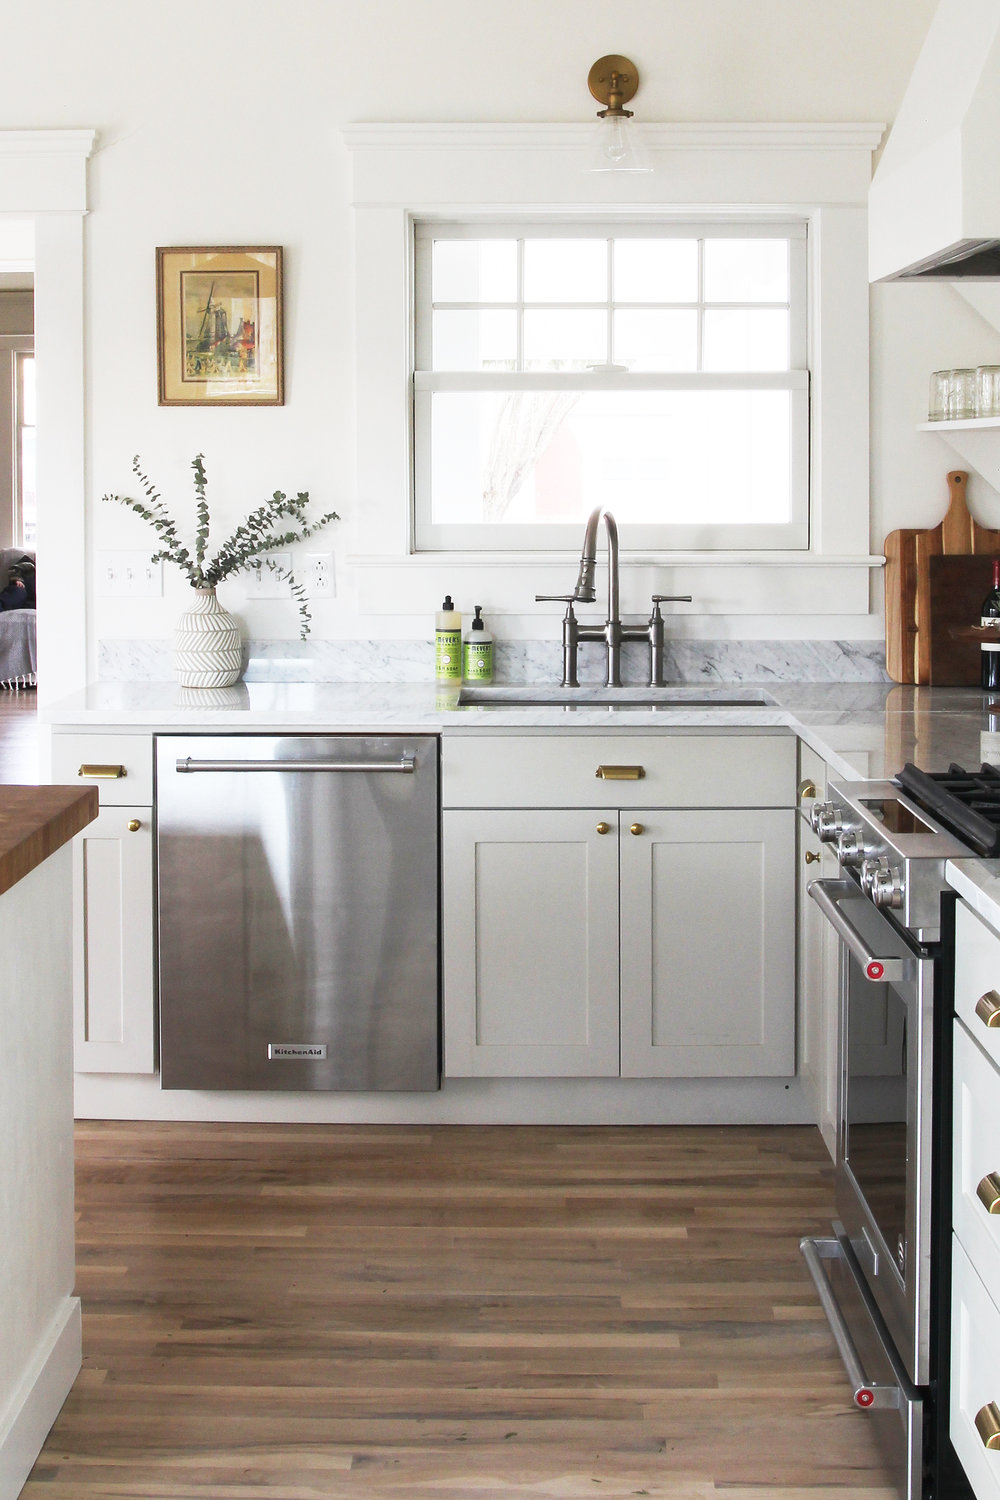 The Grit and Polish - Porch House vintage-inspired new kitchen.jpg